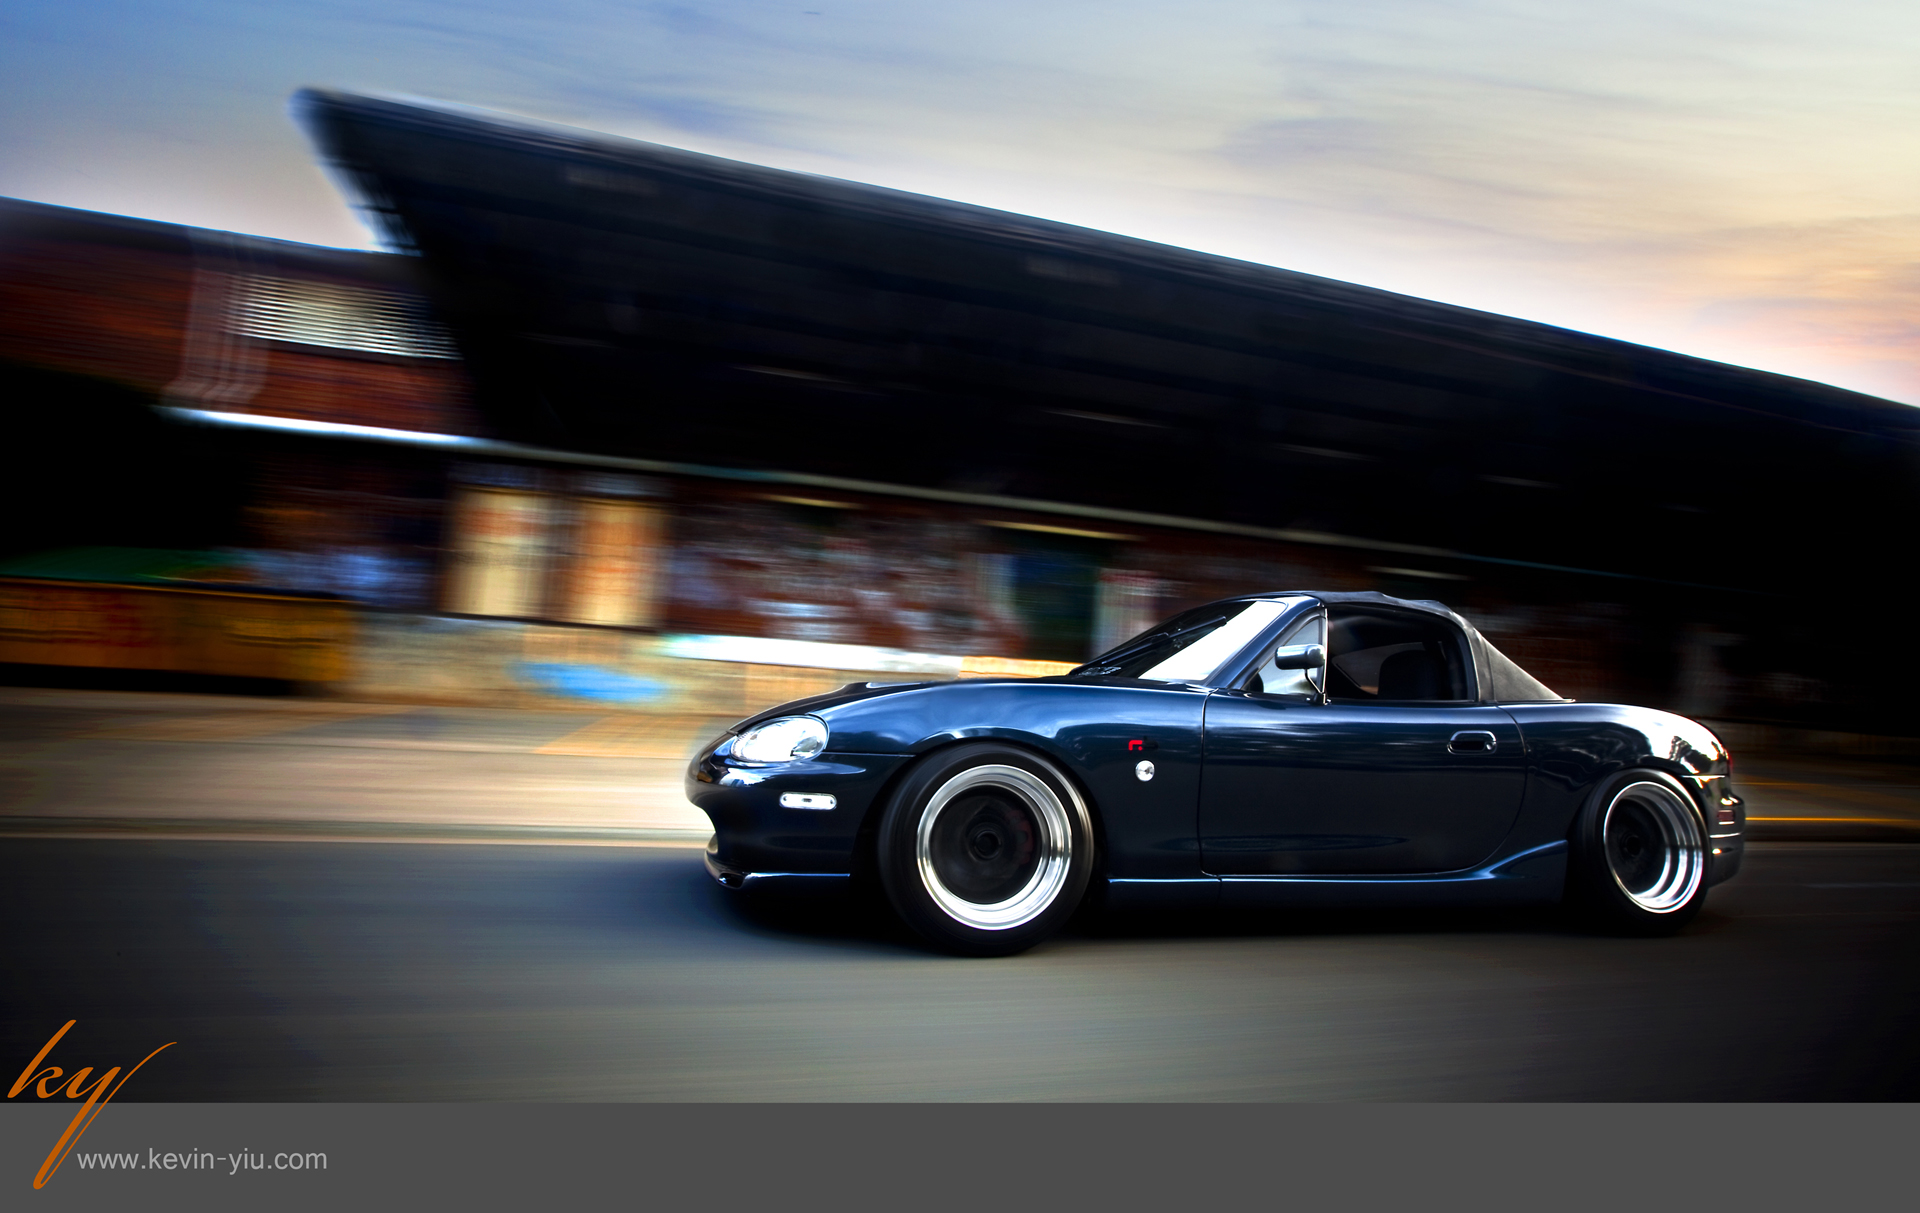 Free Download Mazda Miata Wallpaper 1920x1213 For Your